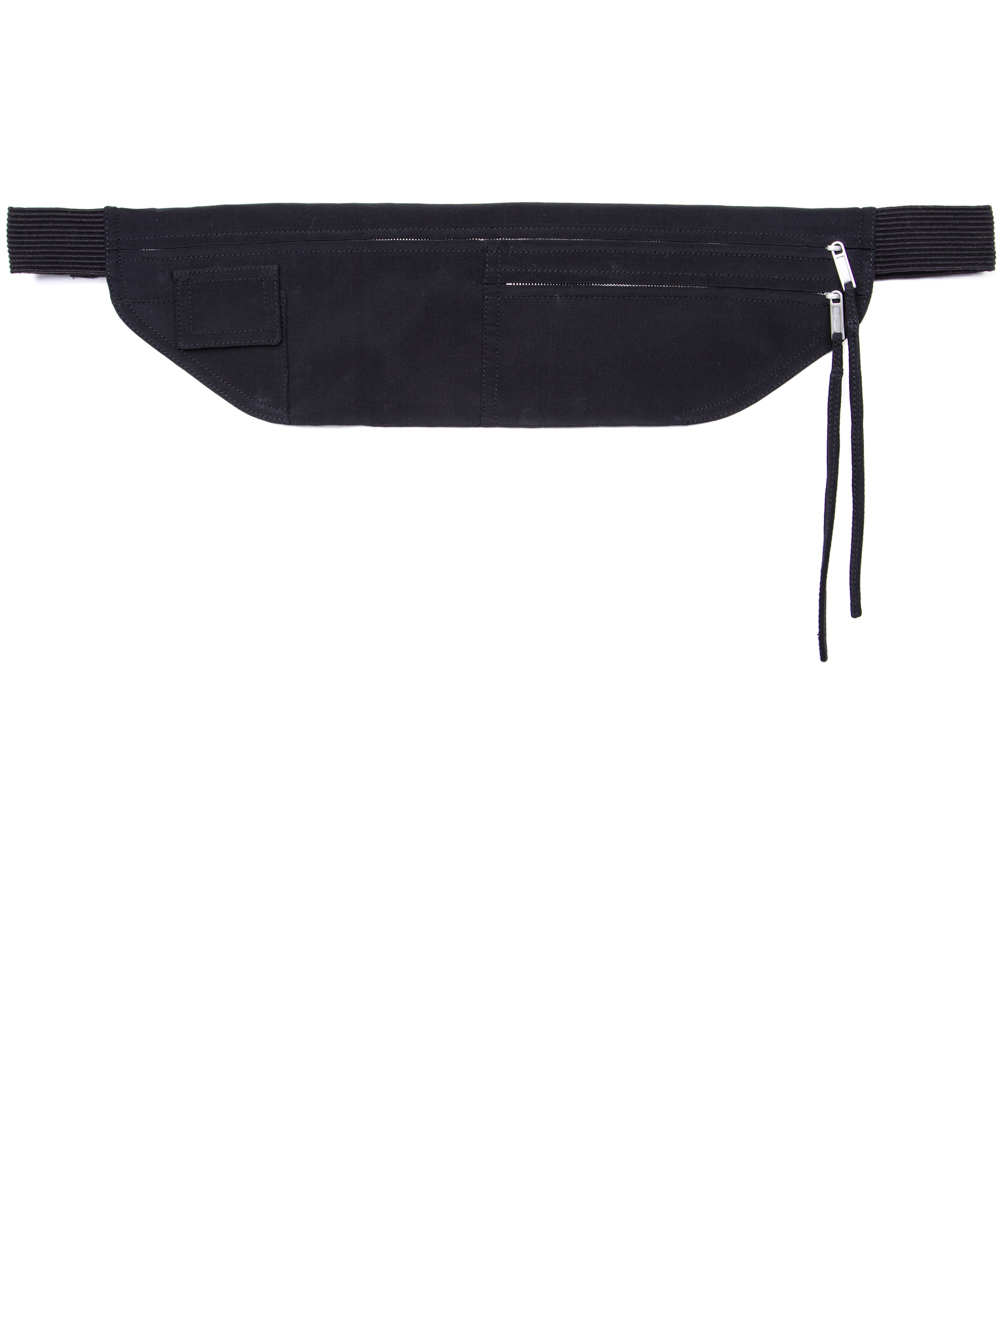 RICK OWENS SS19 BABEL MONEY BELT IN BLACK SILK CREPE